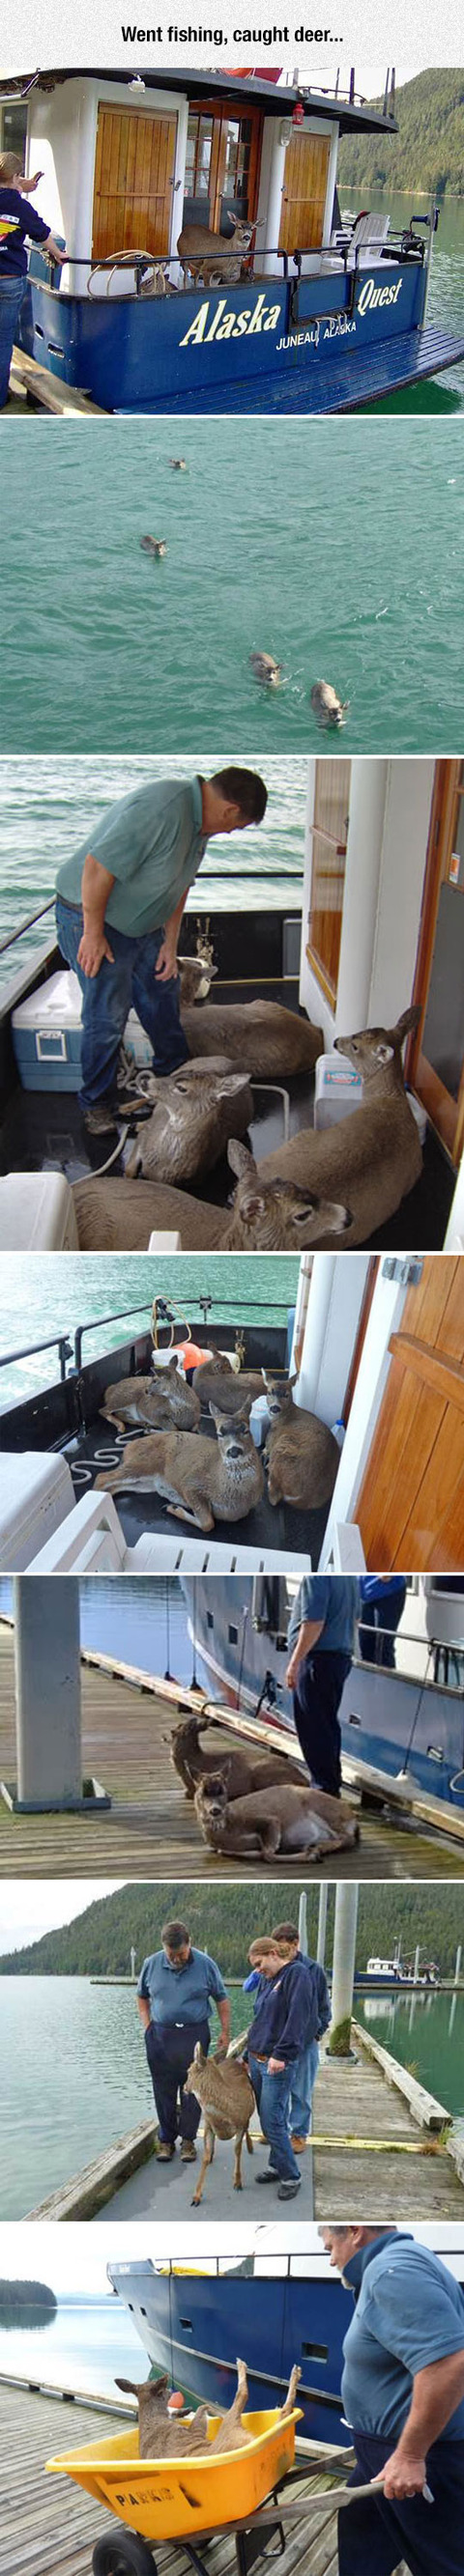 Deer-Fishing-Done-Properly